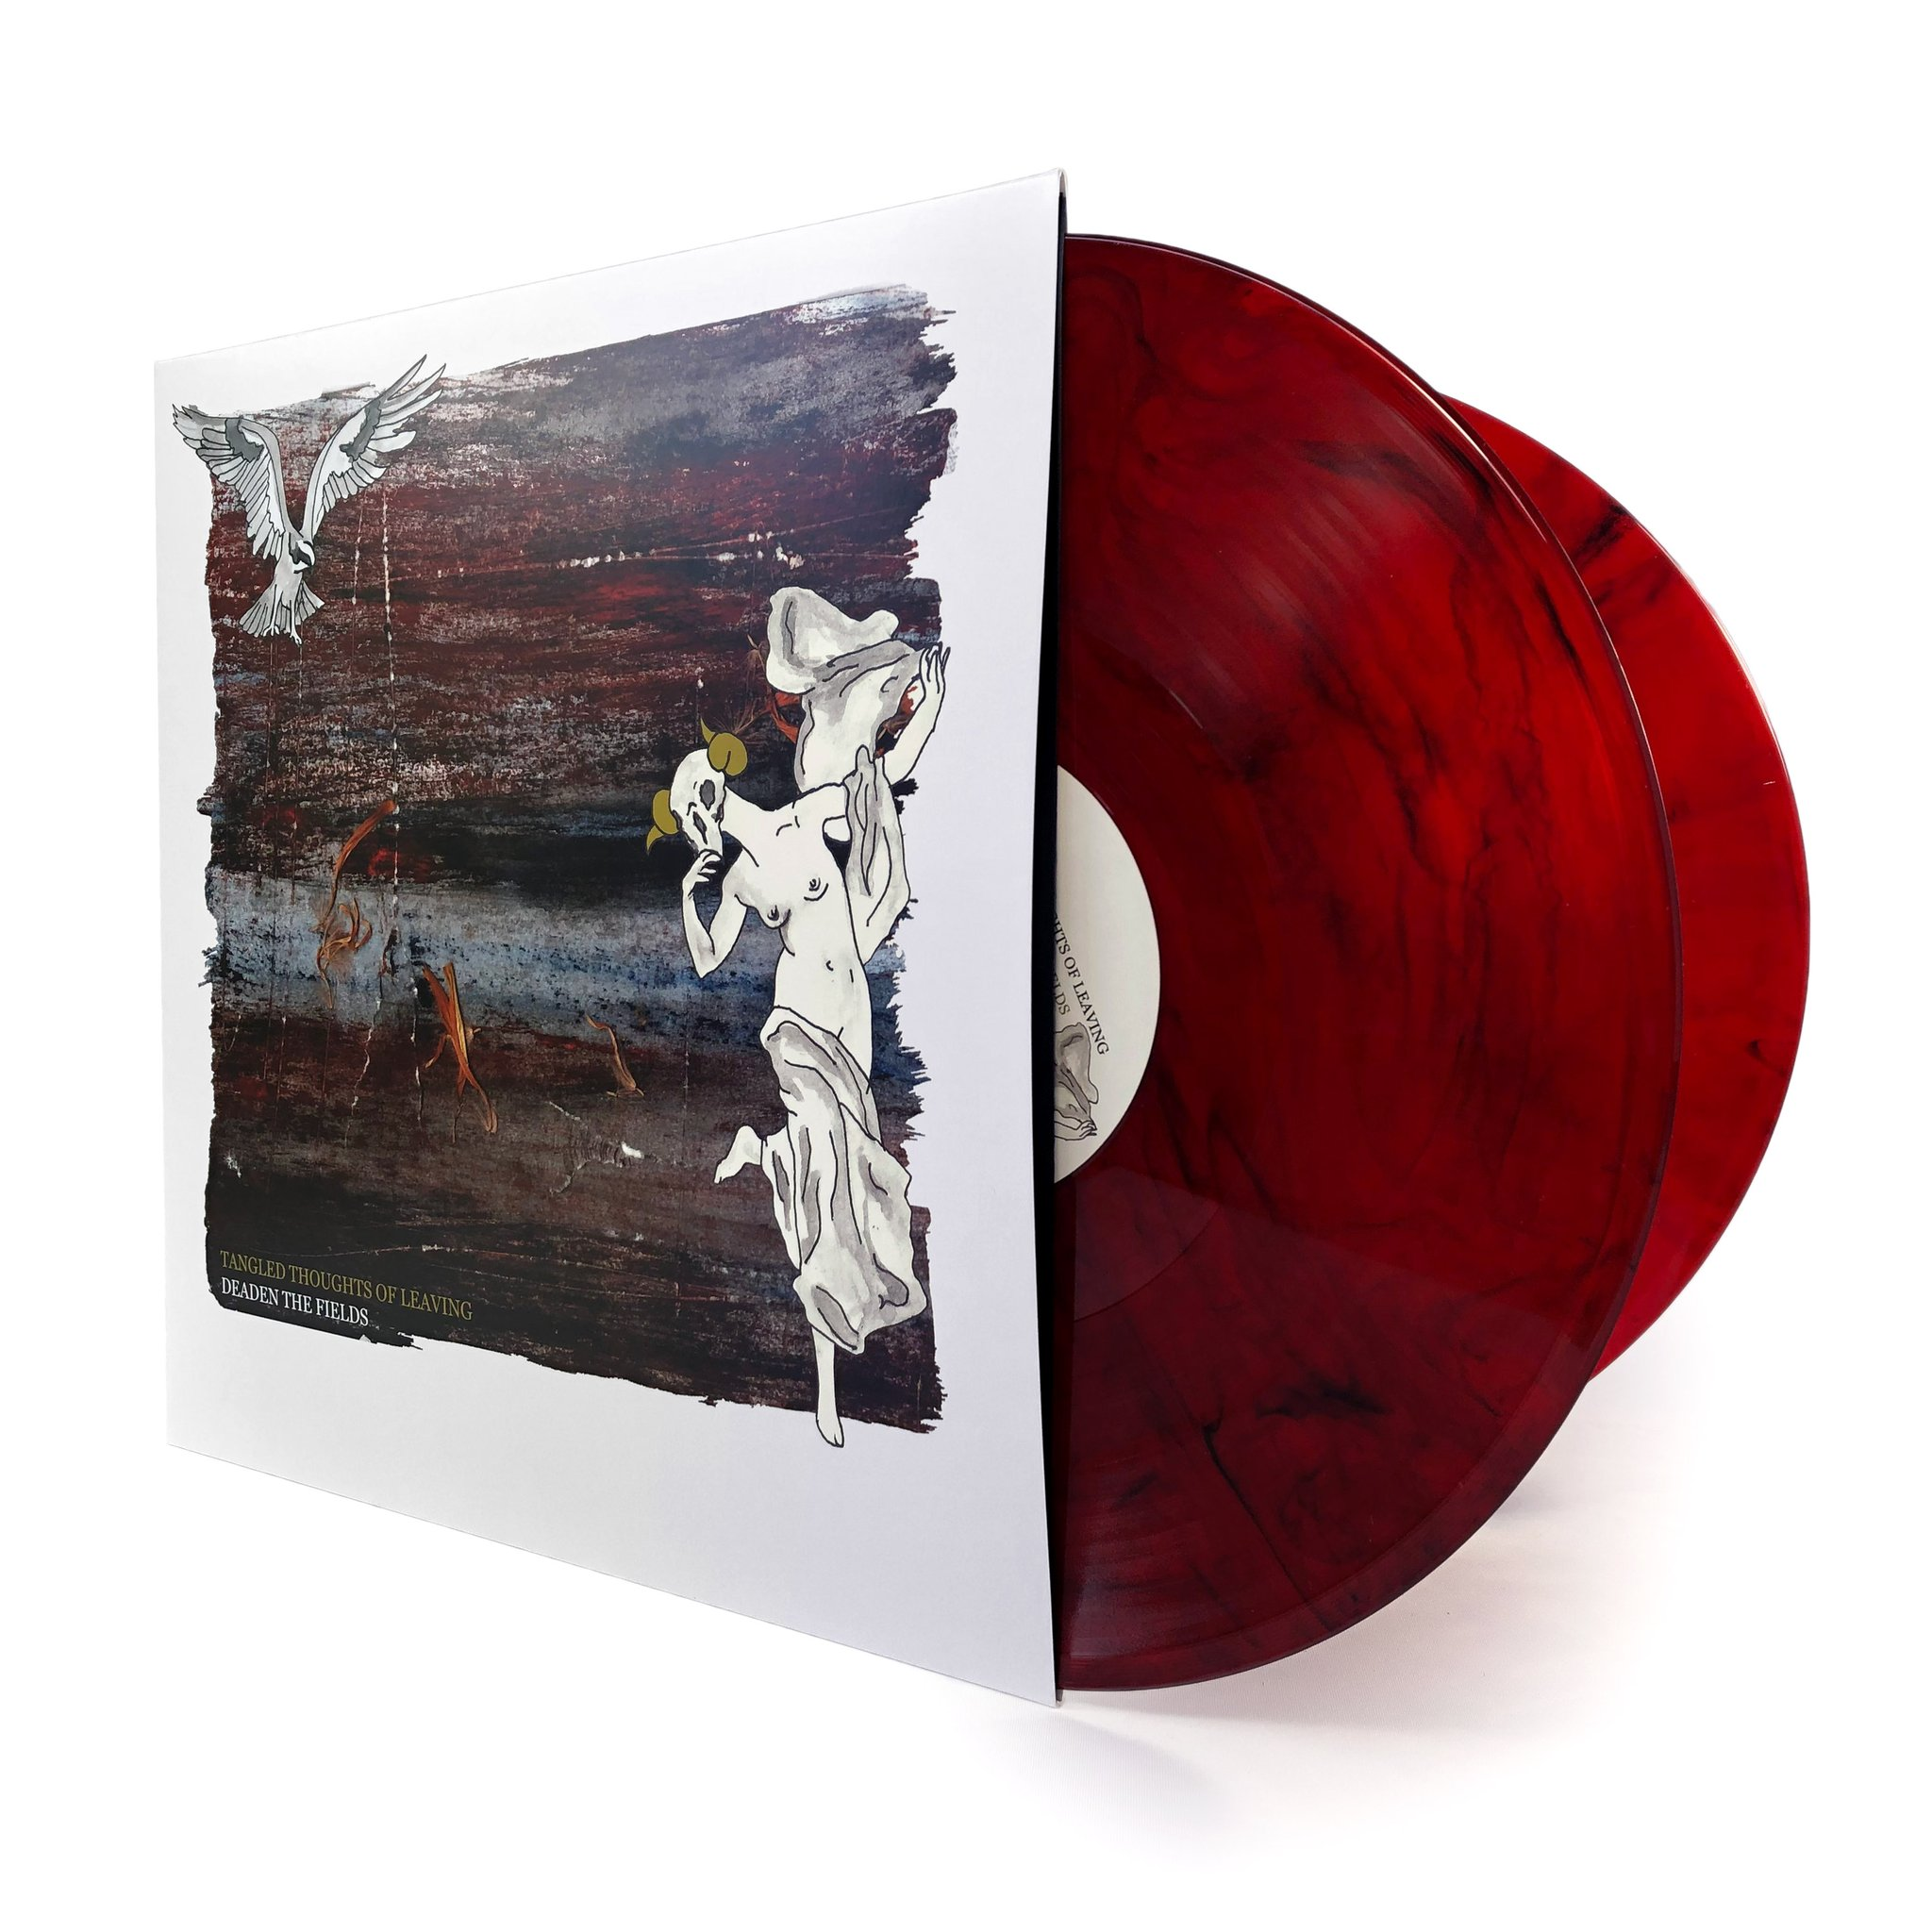 Tangled Thoughts Of Leaving • Deaden The Fields [2xLP] - Released on July 8th, 2011. Limited to 100 copies.